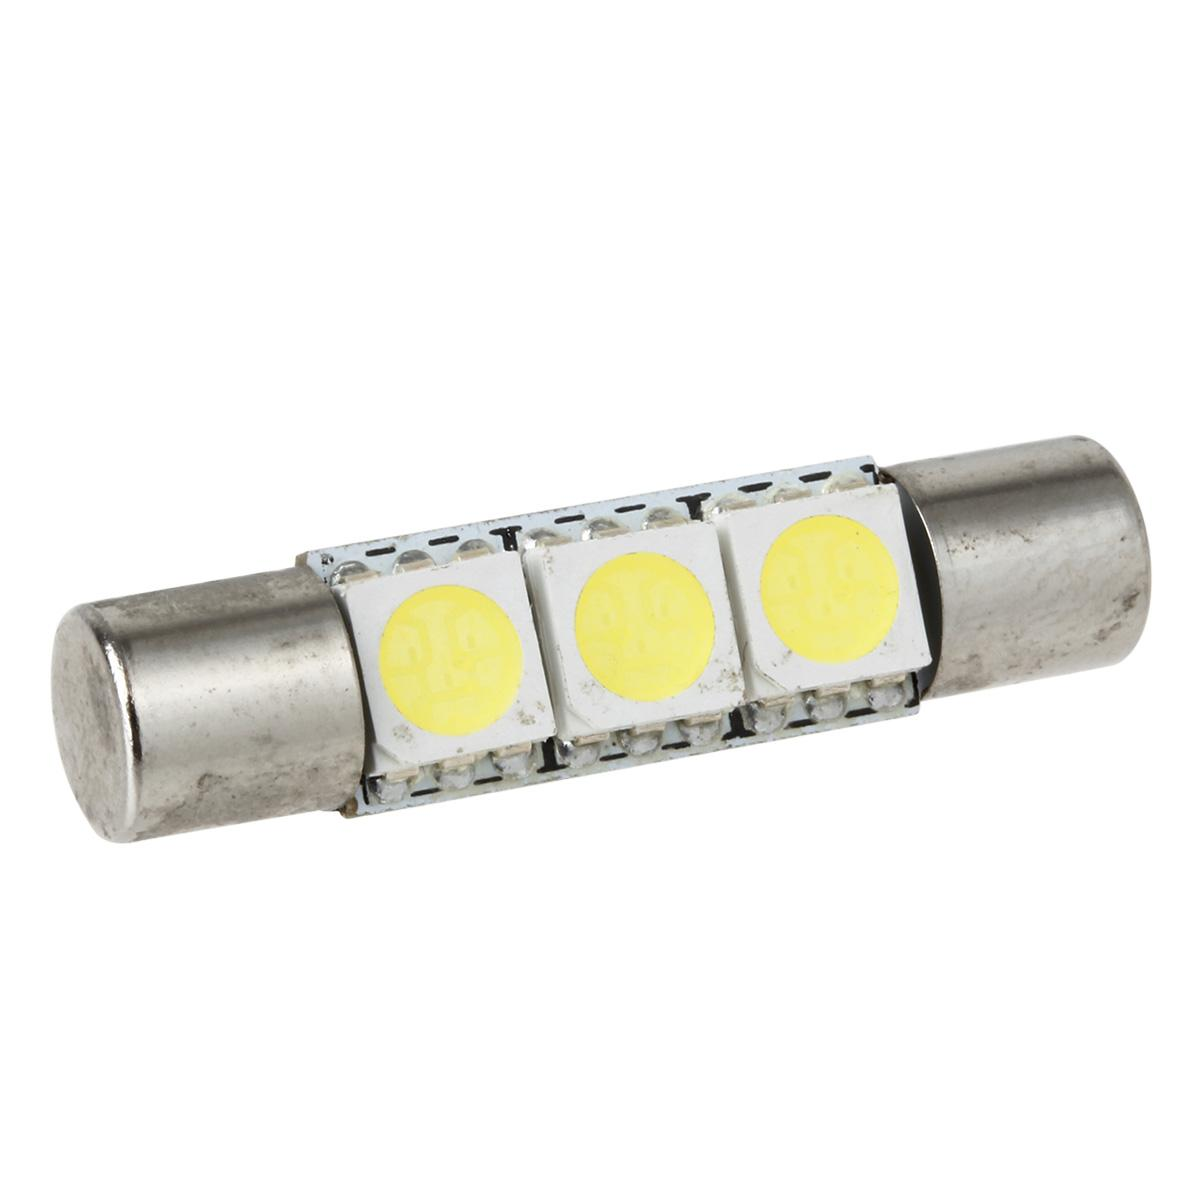 Vanity Light For Car Visor : 4x Xenon White 3-5050 SMD LED Bulbs For Car Vanity Mirror Lights Sun Visor Lamps eBay